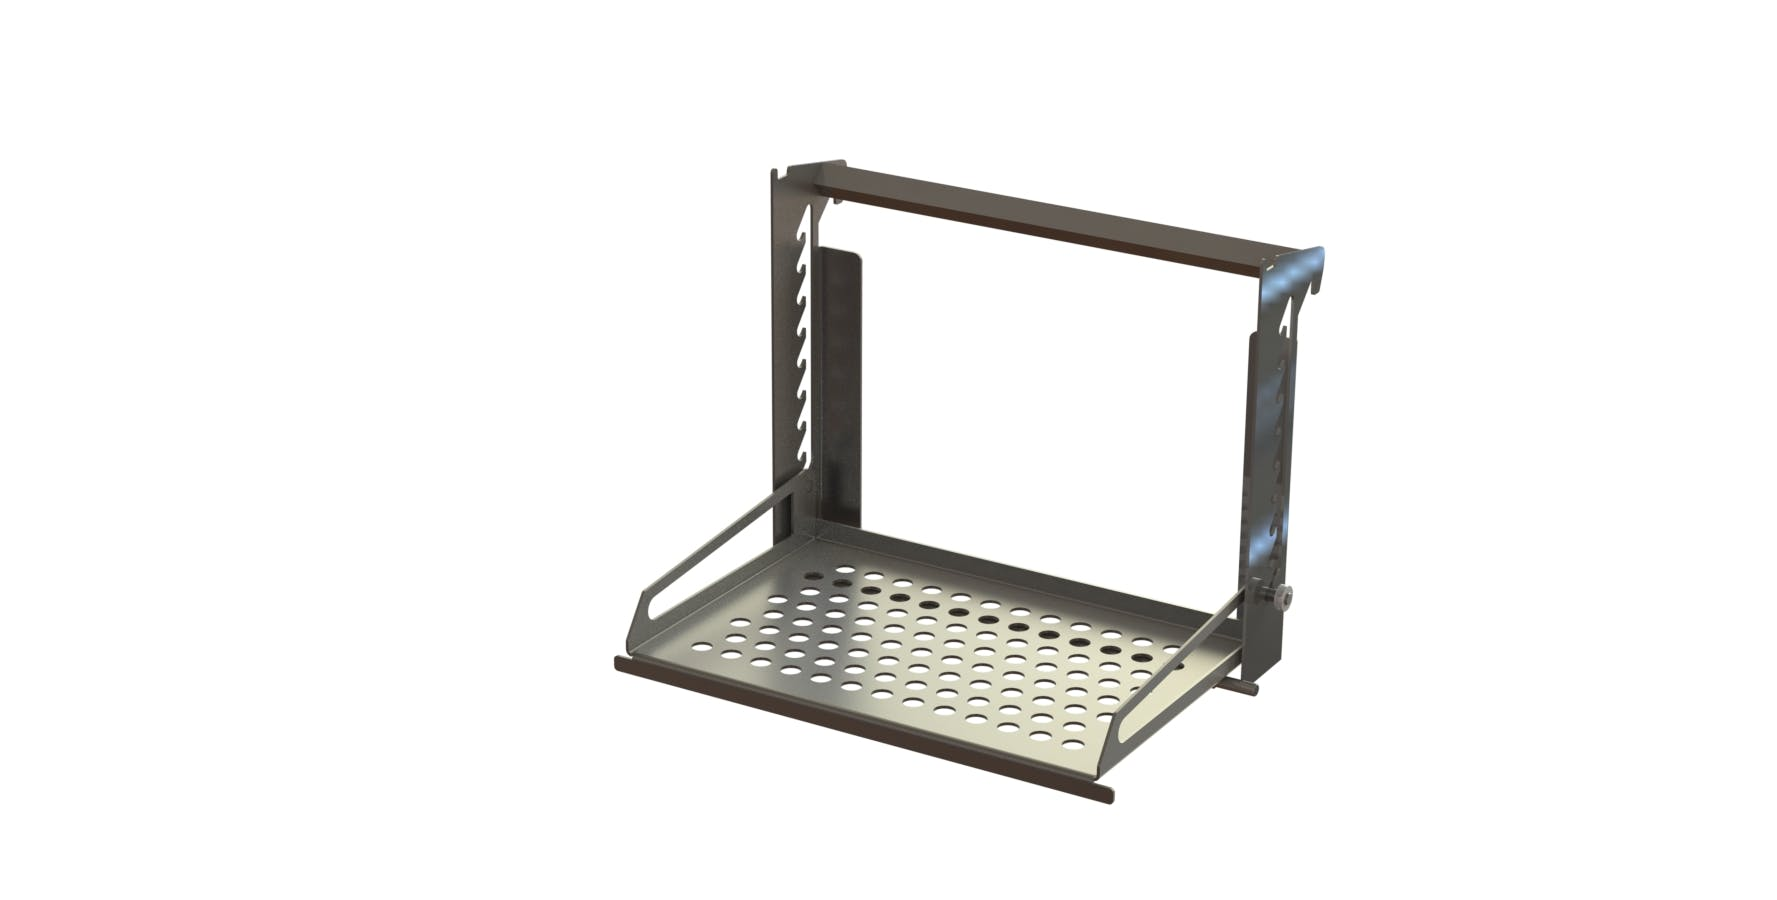 ERG-400 Ergonomic Stand Equipment stand sold by Fusion Tech Integrated Inc.